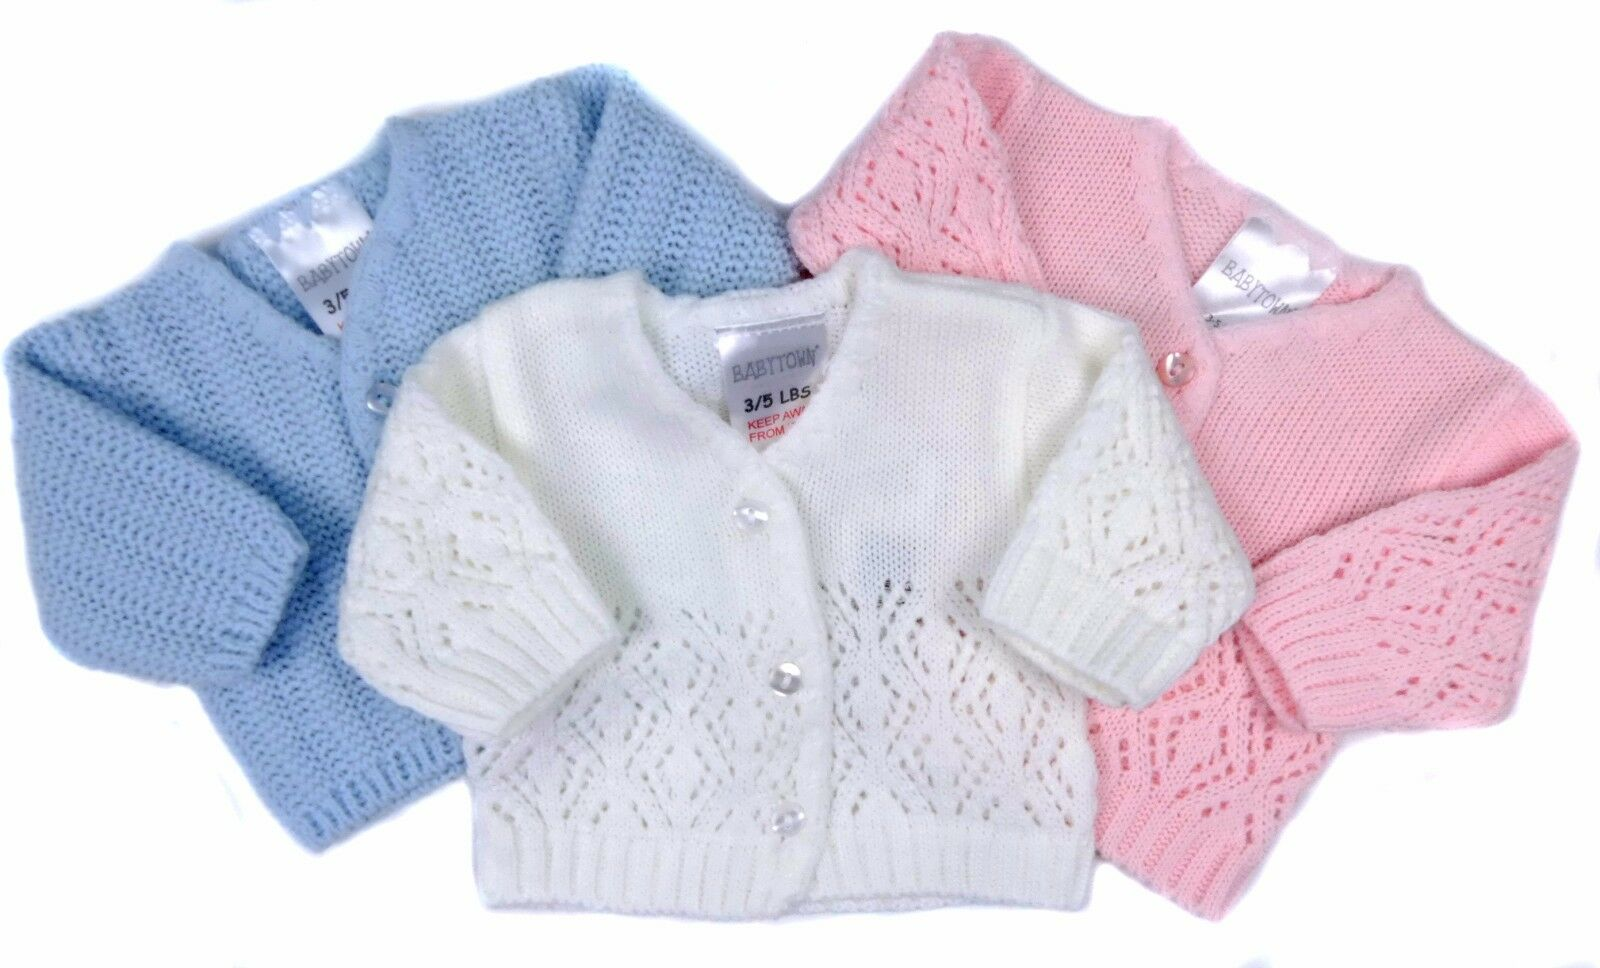 Prem Baby Early Baby Reborn Doll Cardigans Boy Girl White Pink Blue 3-5LB 5-8LB